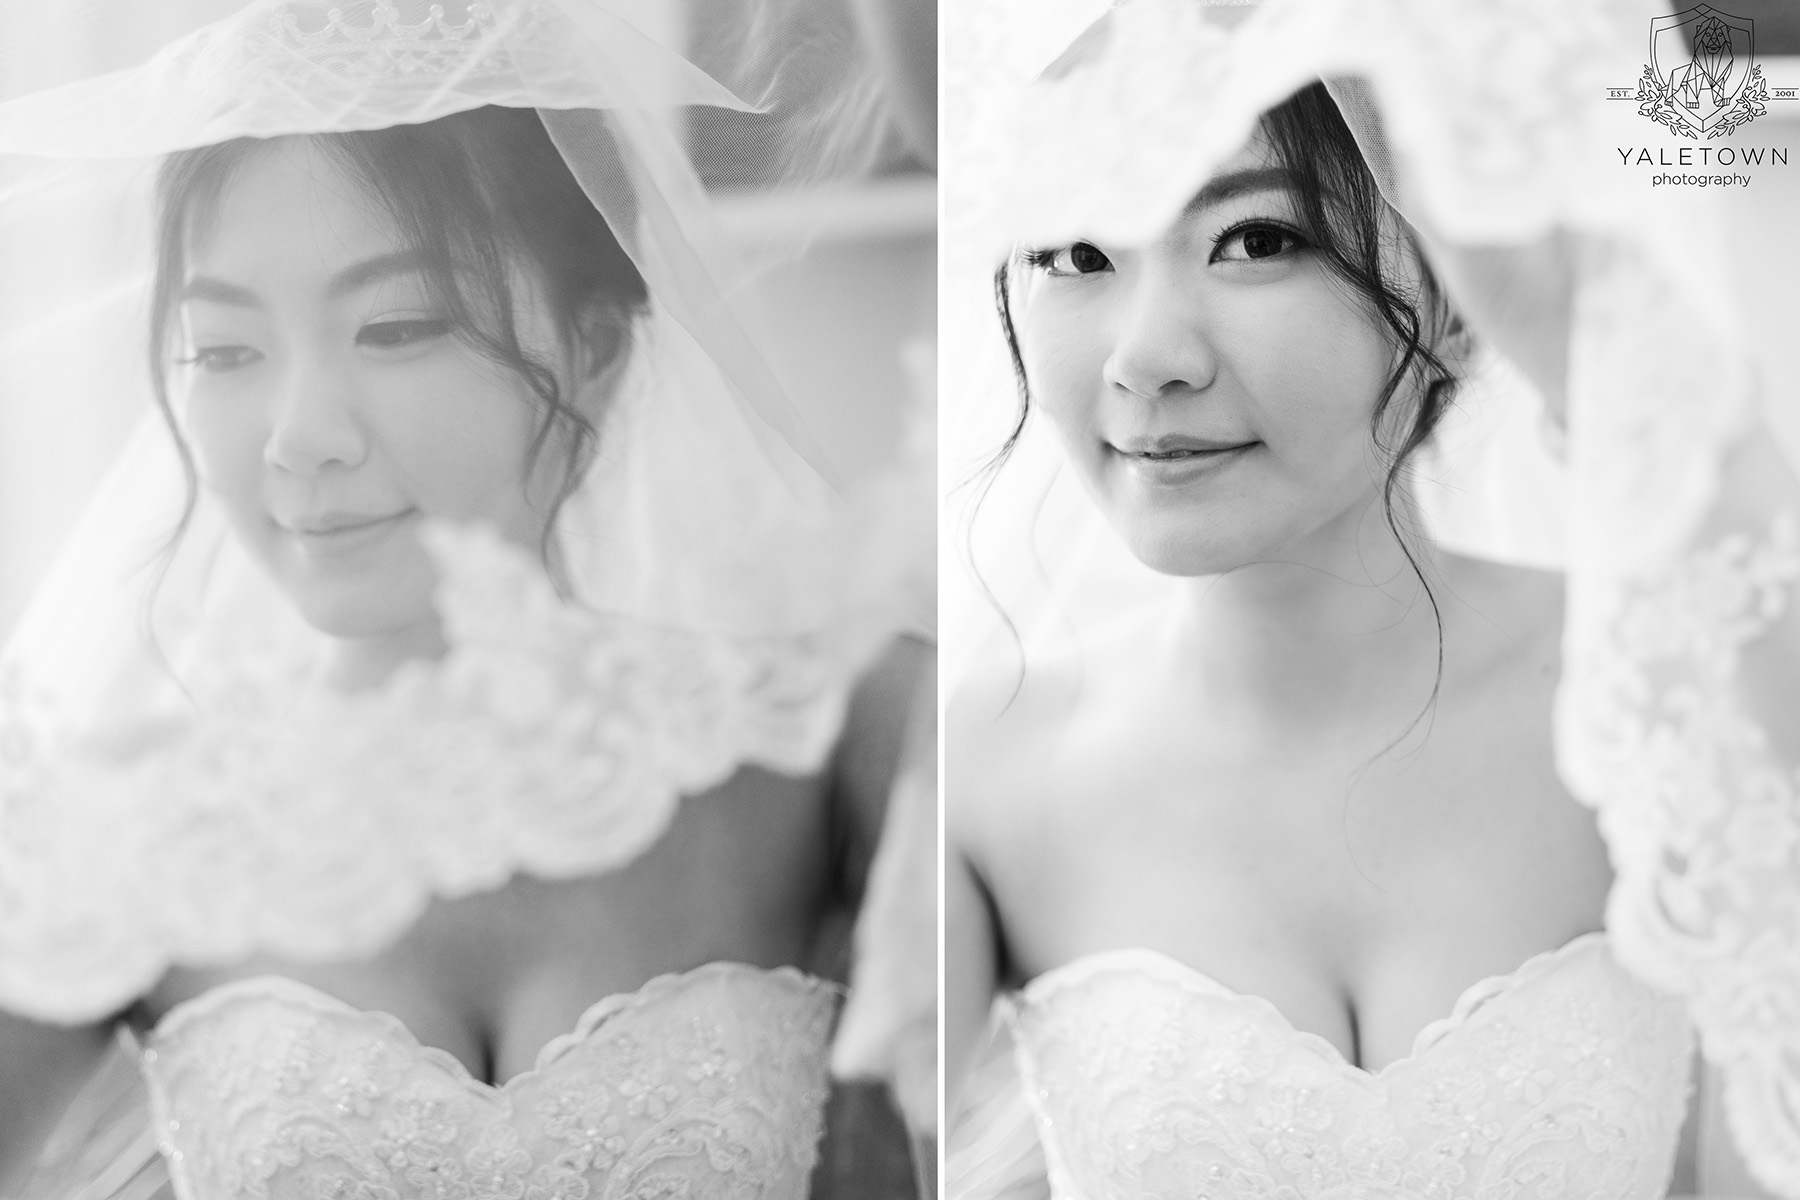 Bride-Bridal-Gown-Veil-Rosewood-Hotel-Georgia-Vancouver-Wedding-Yaletown-Photography-photo